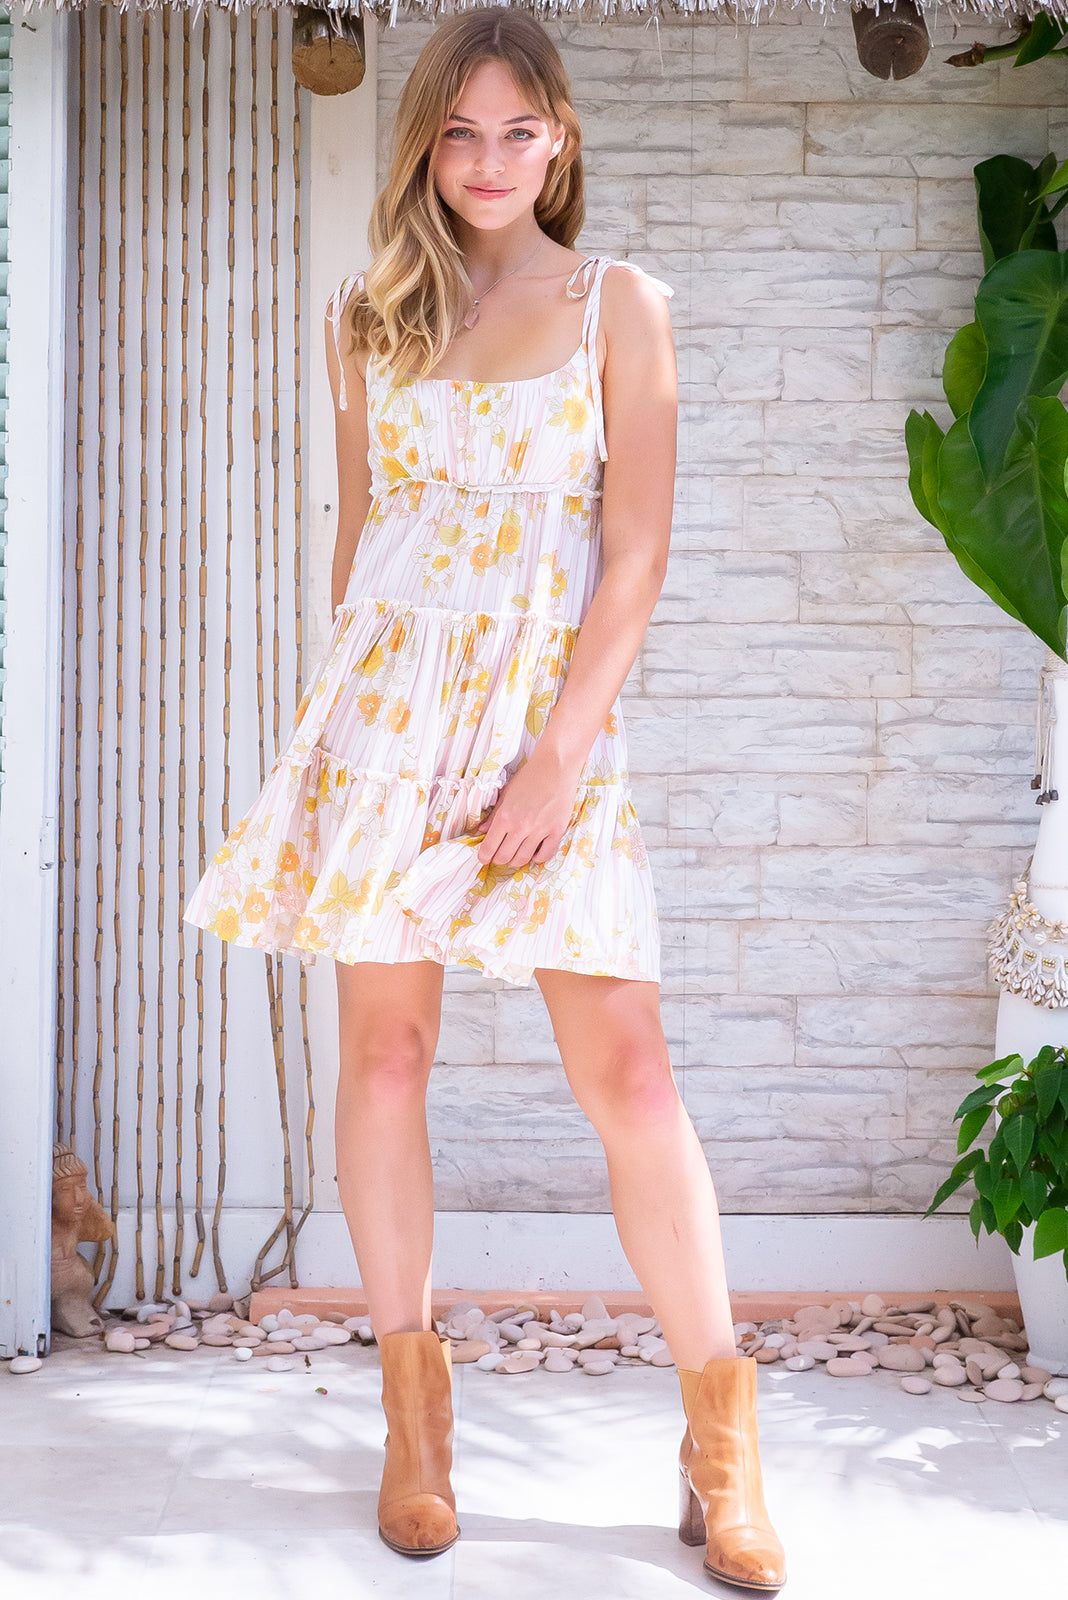 The Tea Stripes Mini Dress has adjustable tie up straps, babydoll cut, shirred elasticated upper back, tiered skirt, white base with muted pink stripe and 60's floral print in woven 100%  rayon.